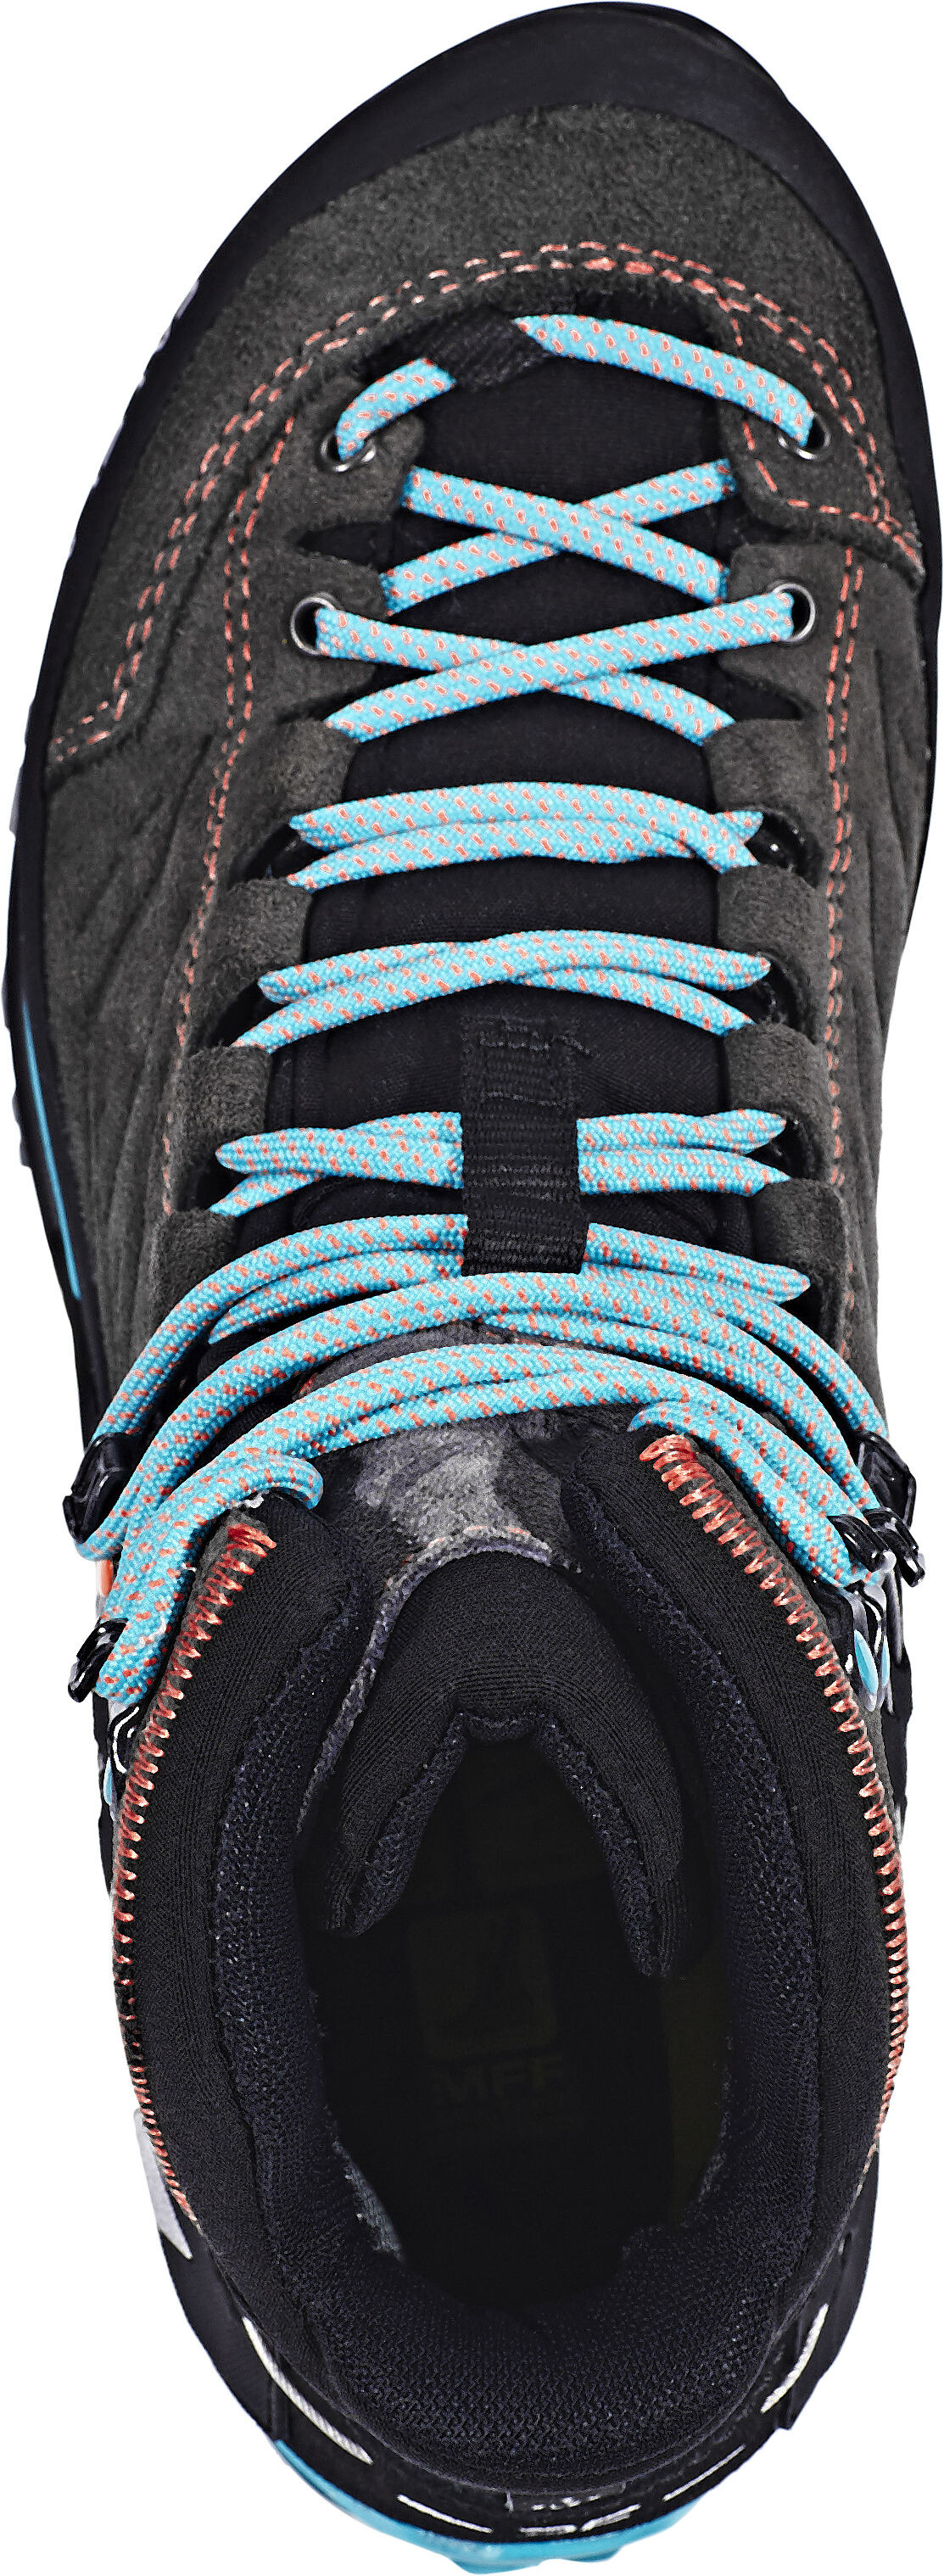 salewa mtn trainer mid gtx calzado mujer negro. Black Bedroom Furniture Sets. Home Design Ideas